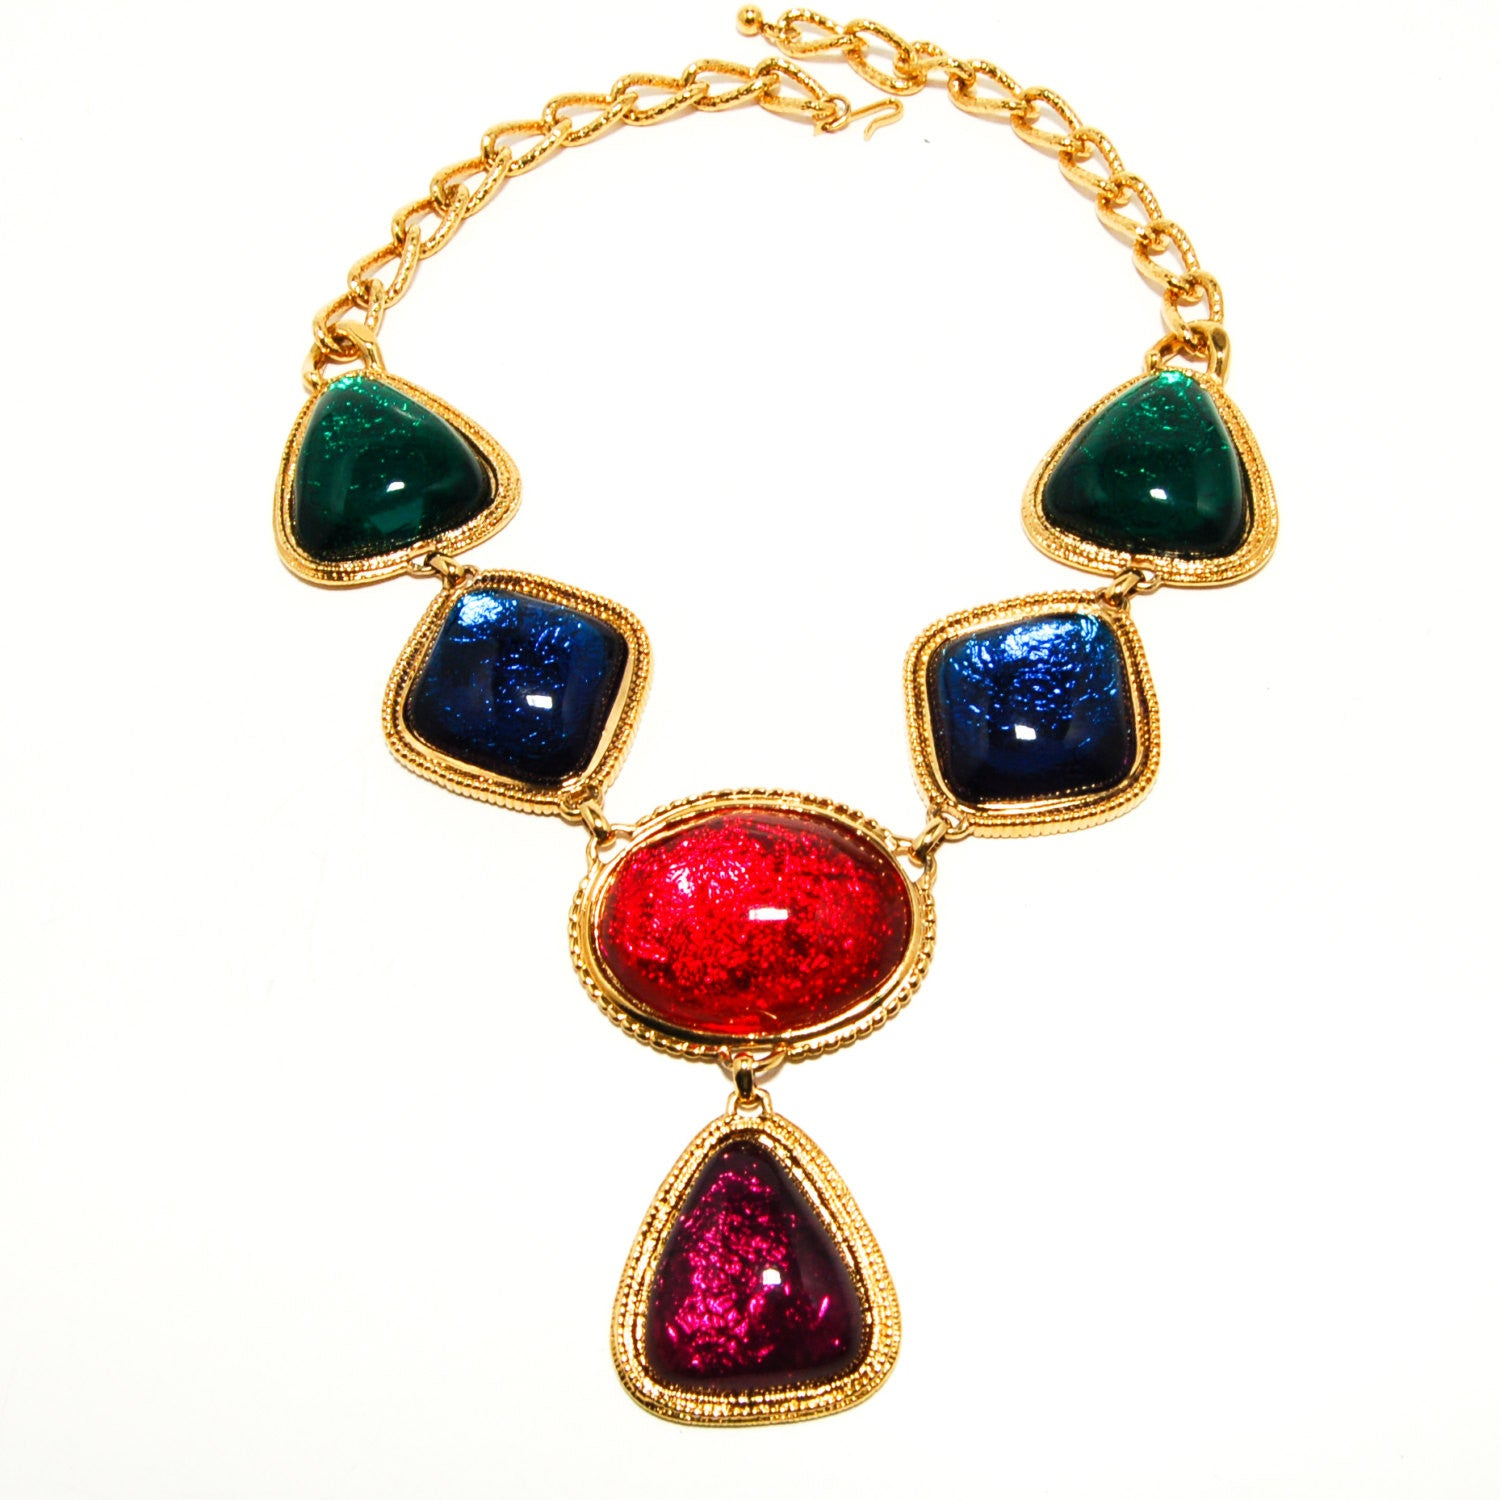 Found: An Amazing Vintage Jewel Tone Necklace from the1920s Found: An Amazing Vintage Jewel Tone Necklace from the1920s new photo